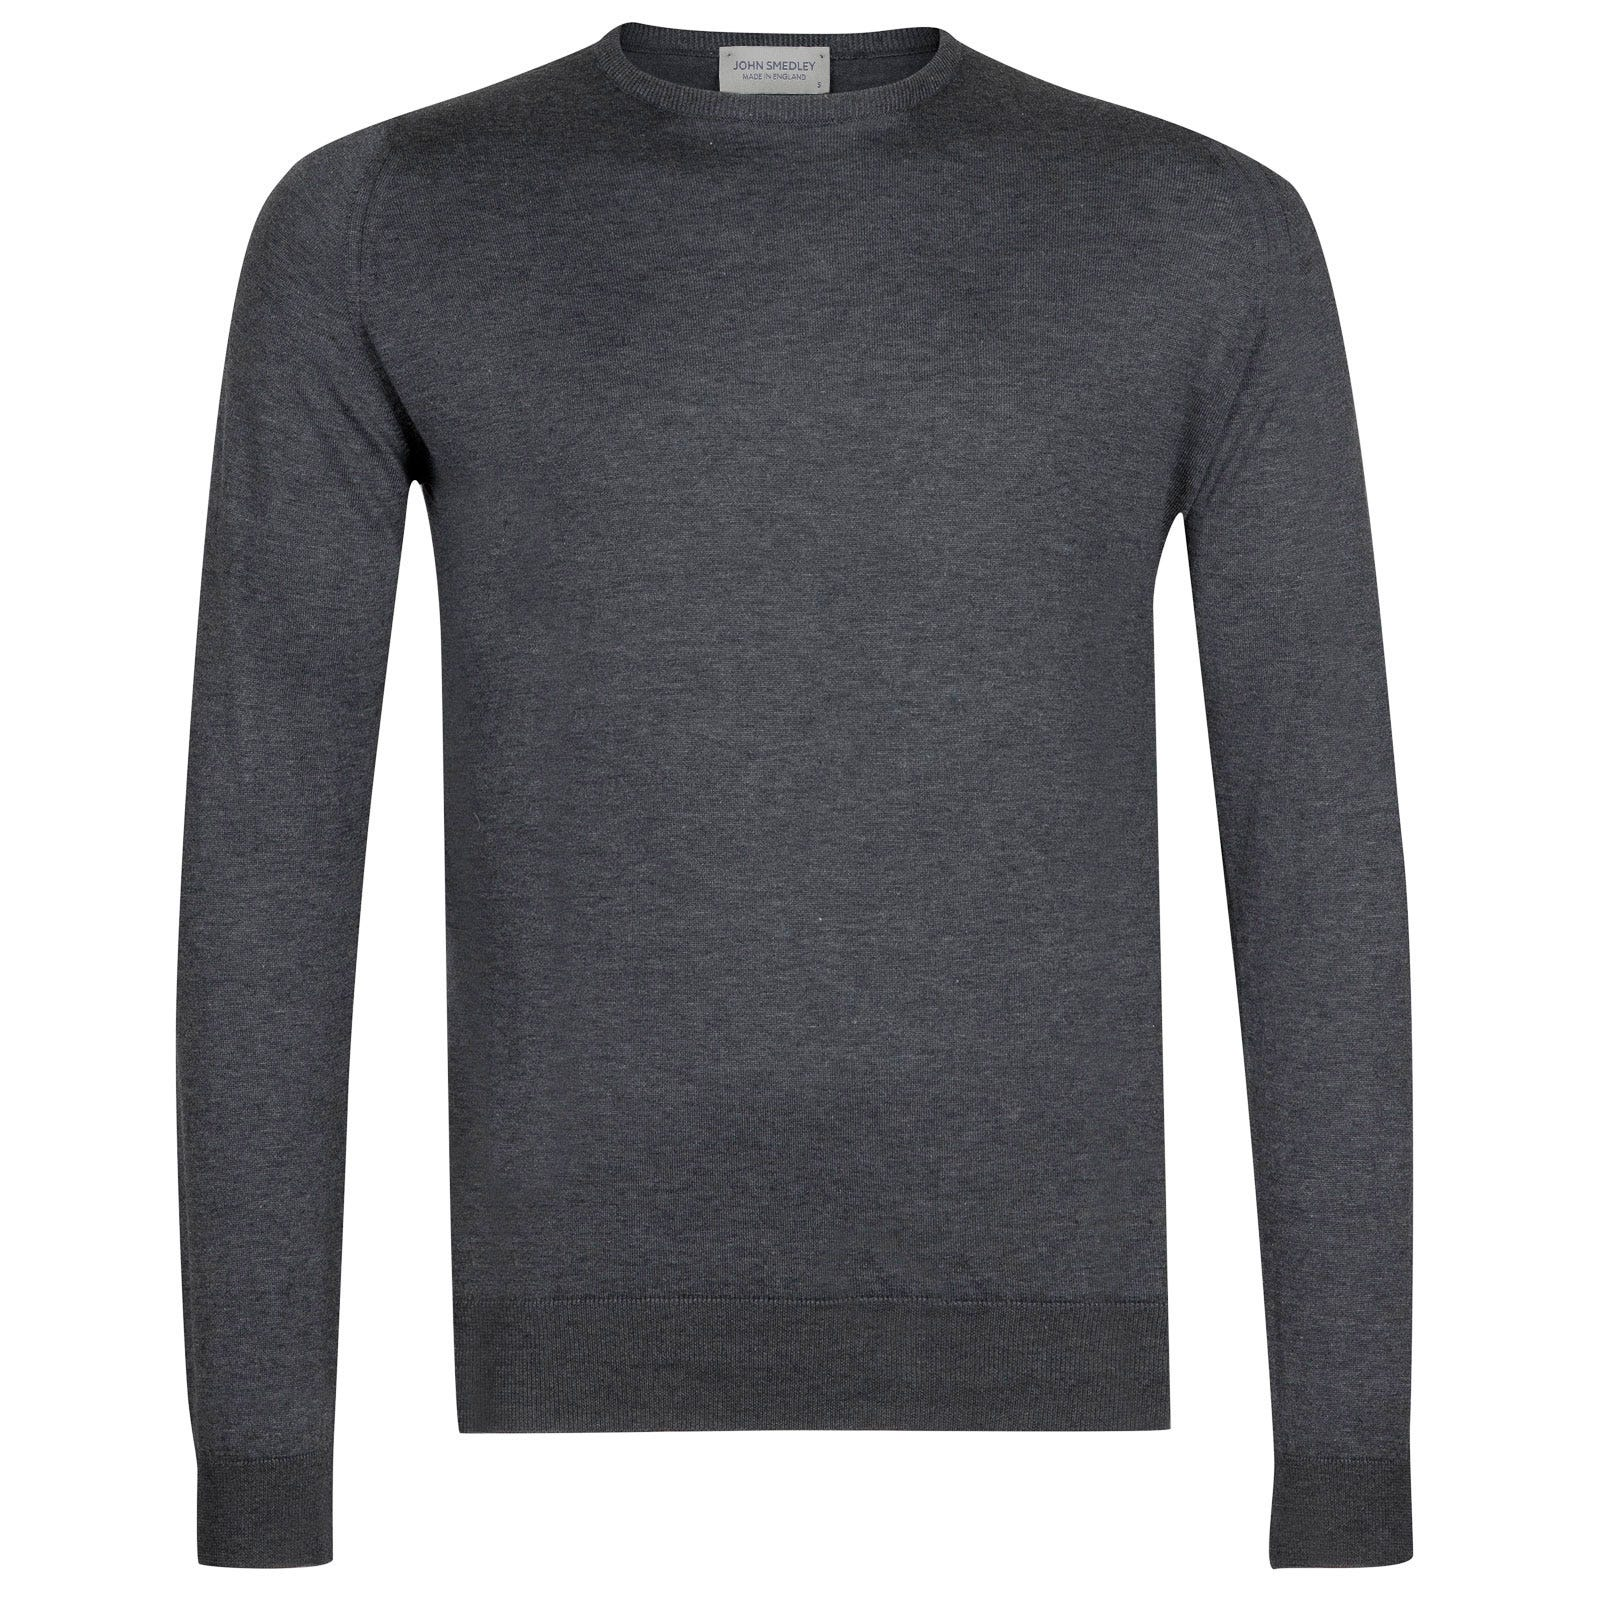 John Smedley hatfield Sea Island Cotton Pullover in Charcoal-XXL